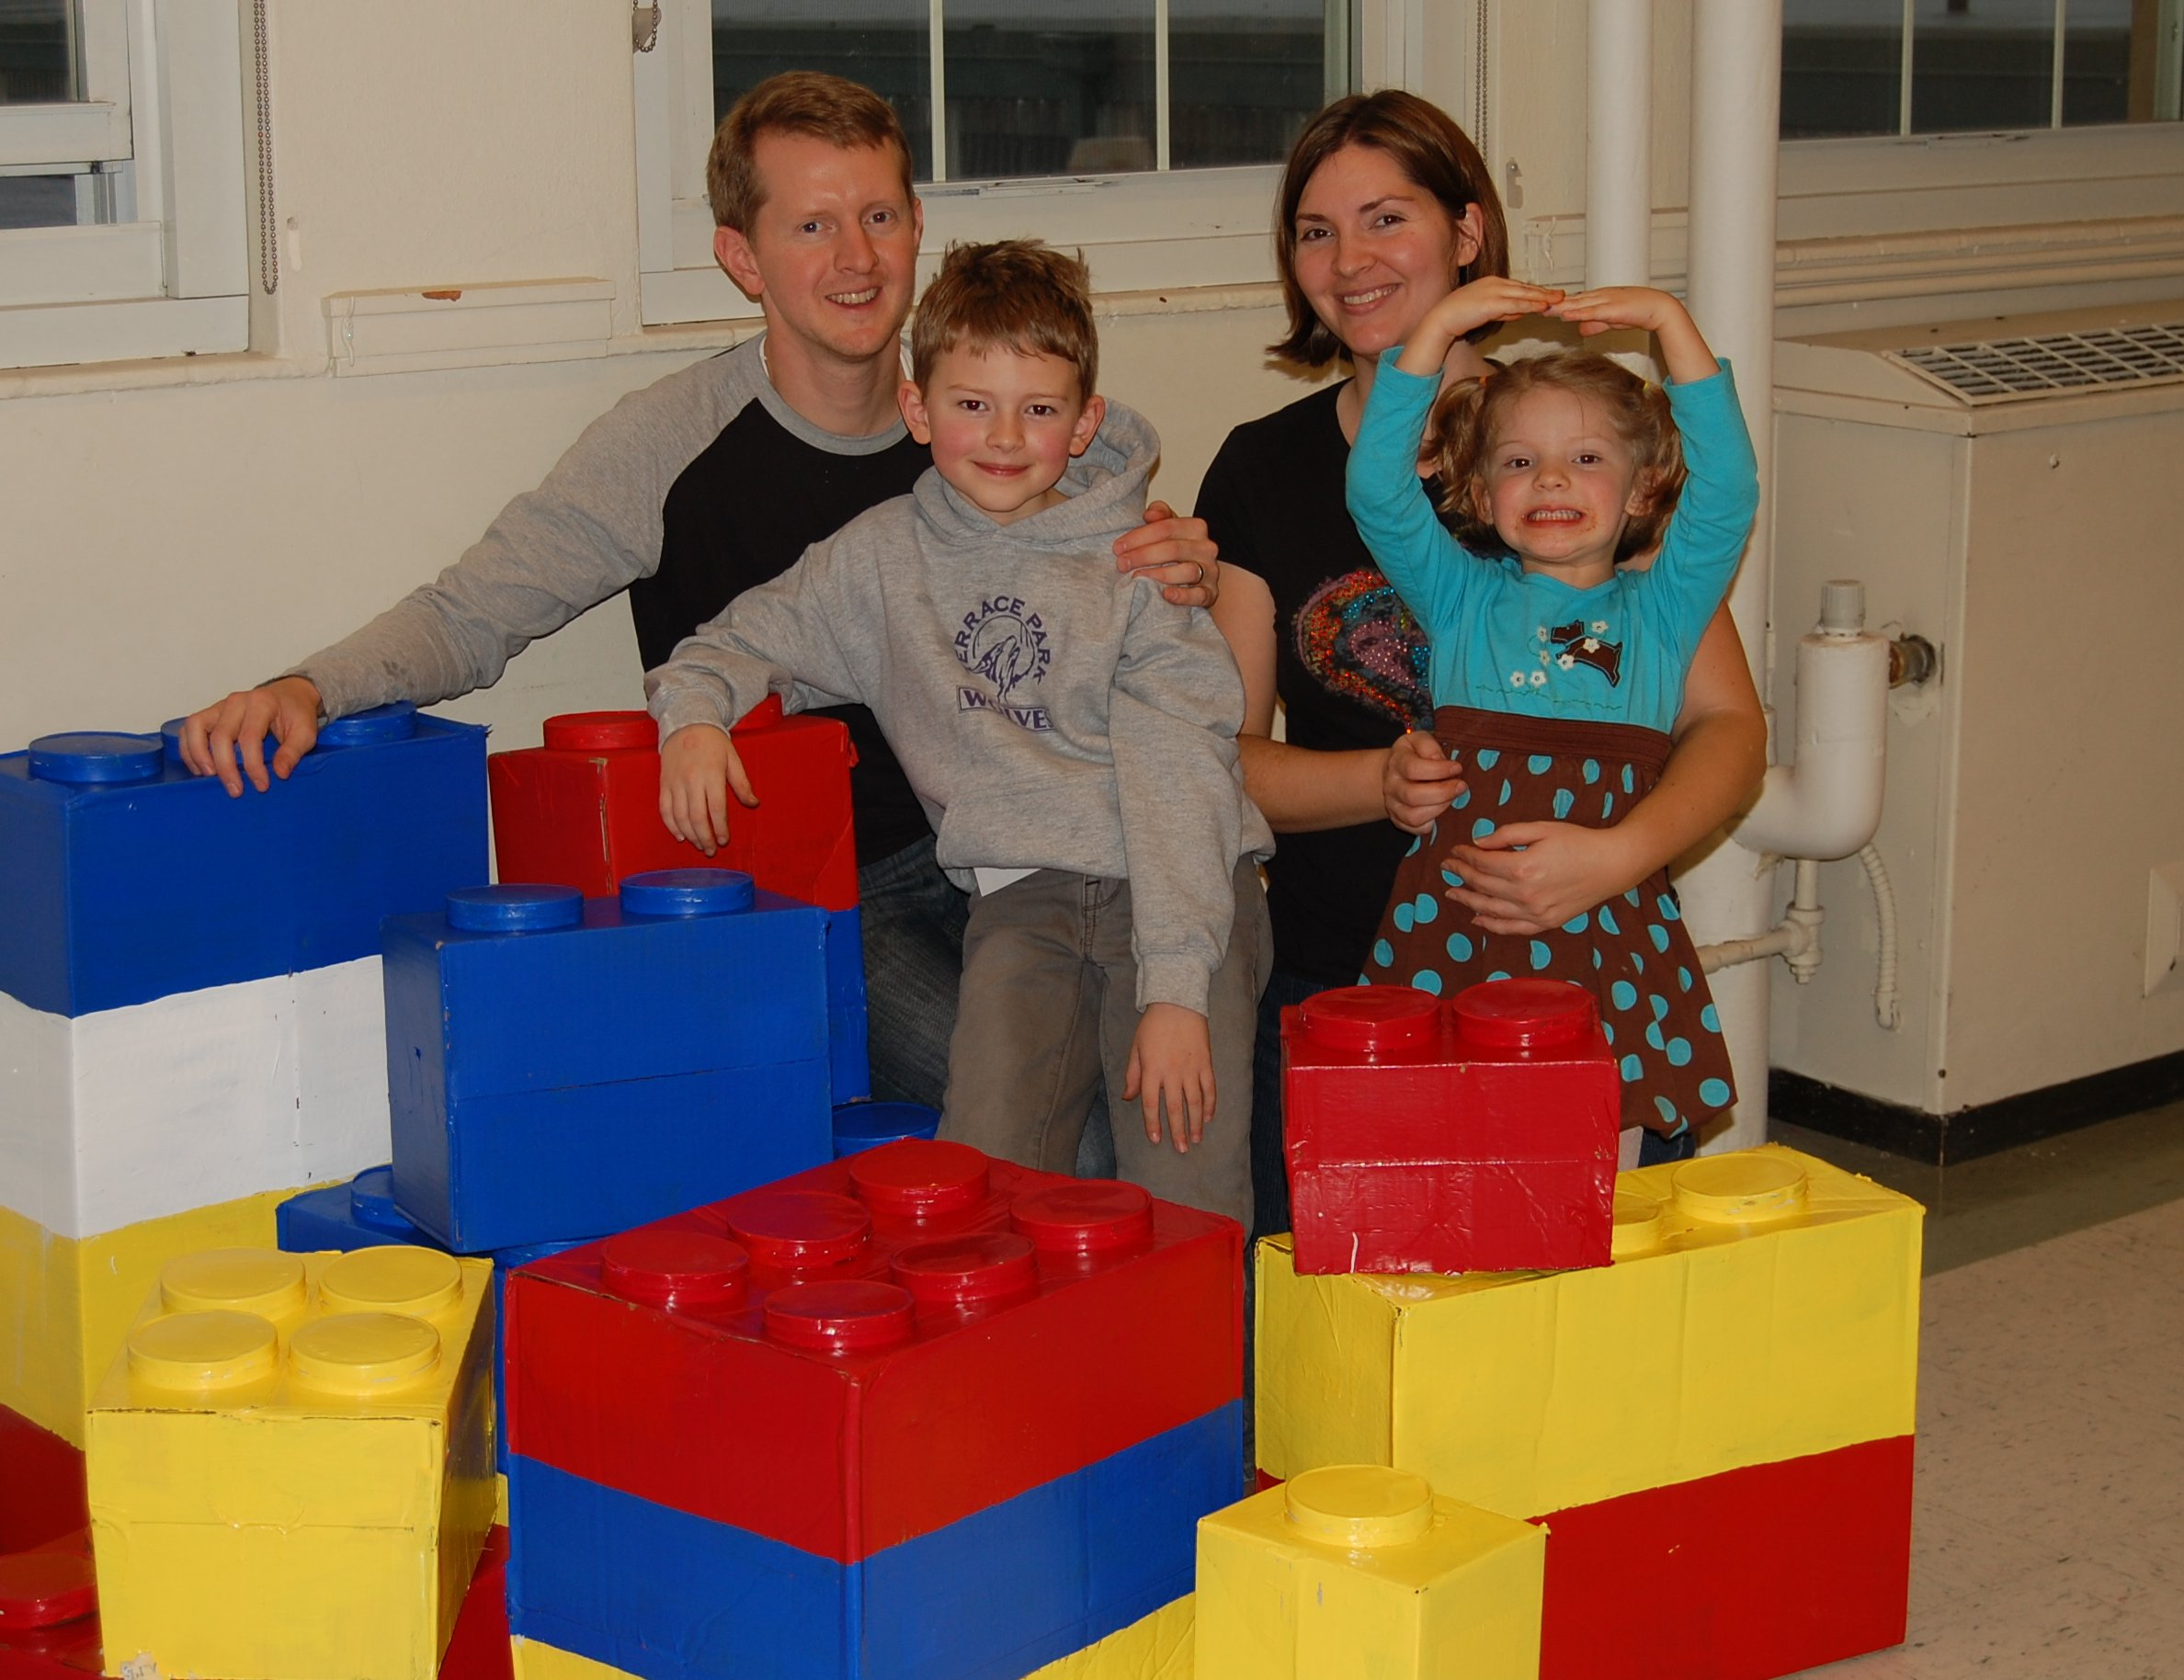 Ken Jennings woth wife Mindy Jennings and children